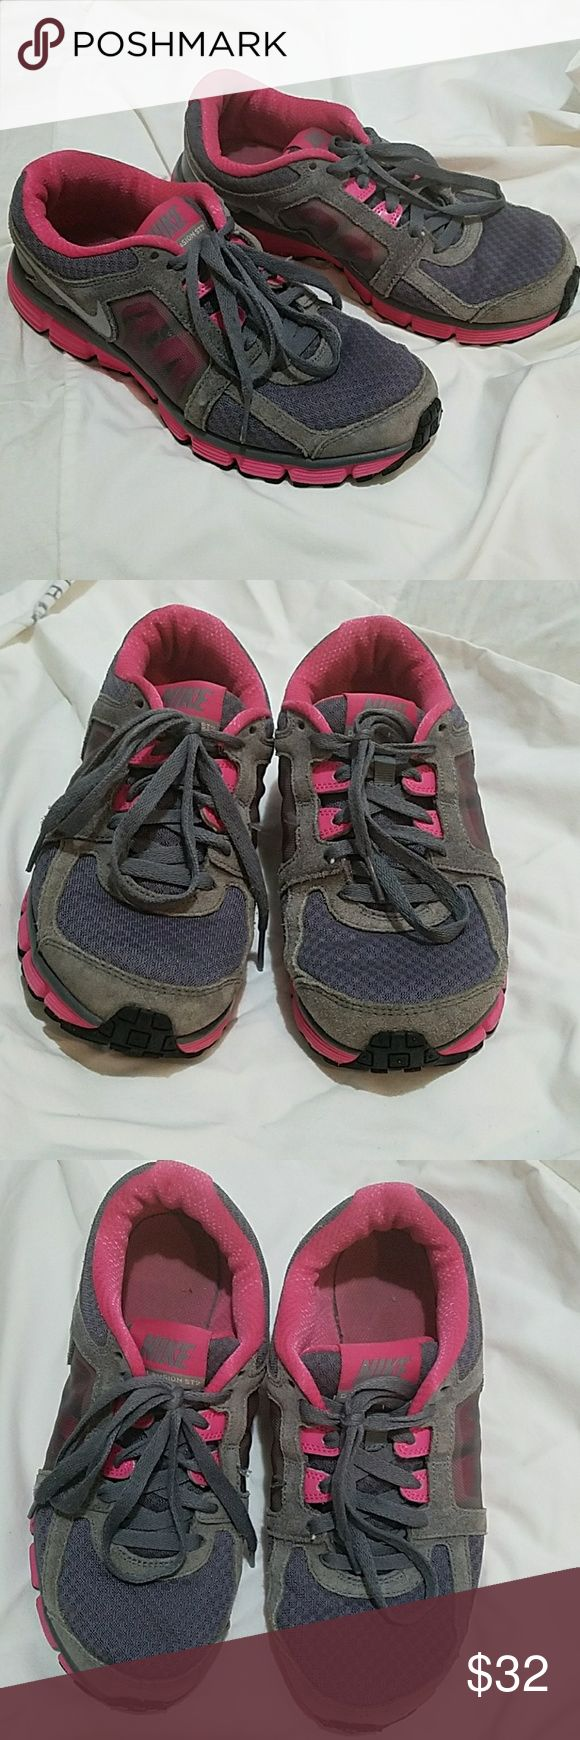 Nike Dual Fusion 2 Any signs of wear would be shown in the pictures otherwise these arein good condition Nike Shoes Sneakers